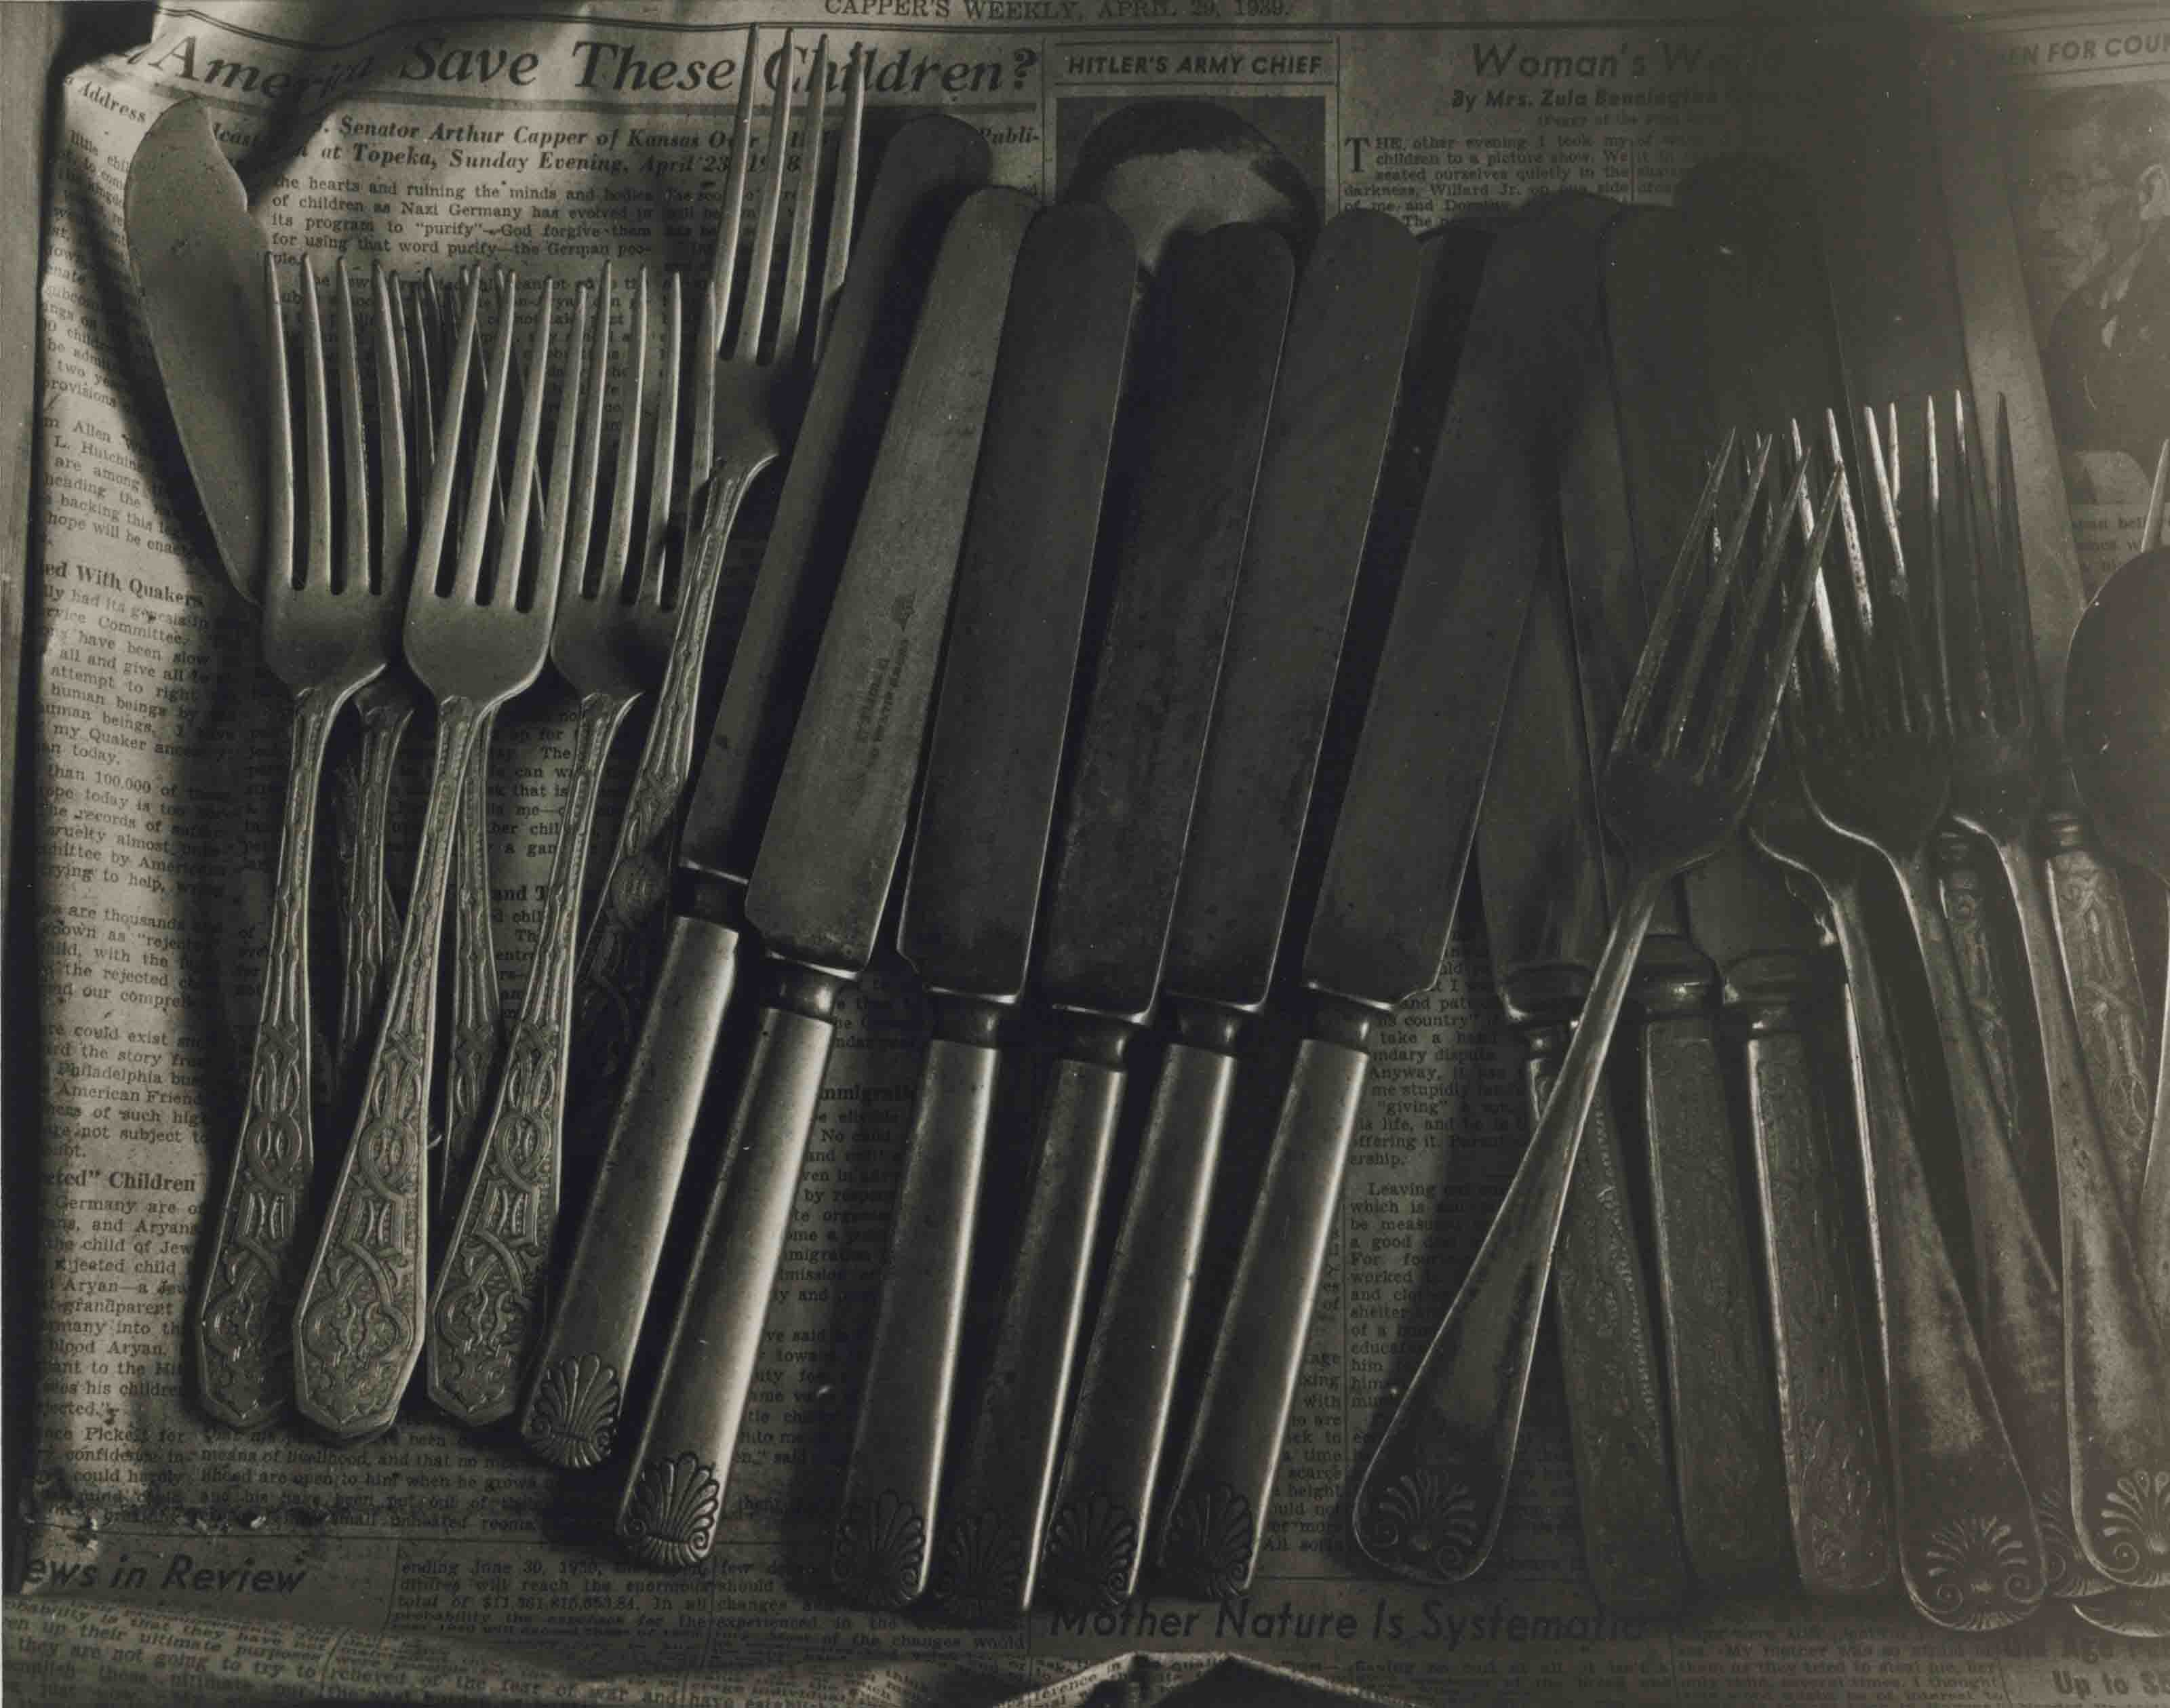 Drawer with Silverware, Home Place, 1947